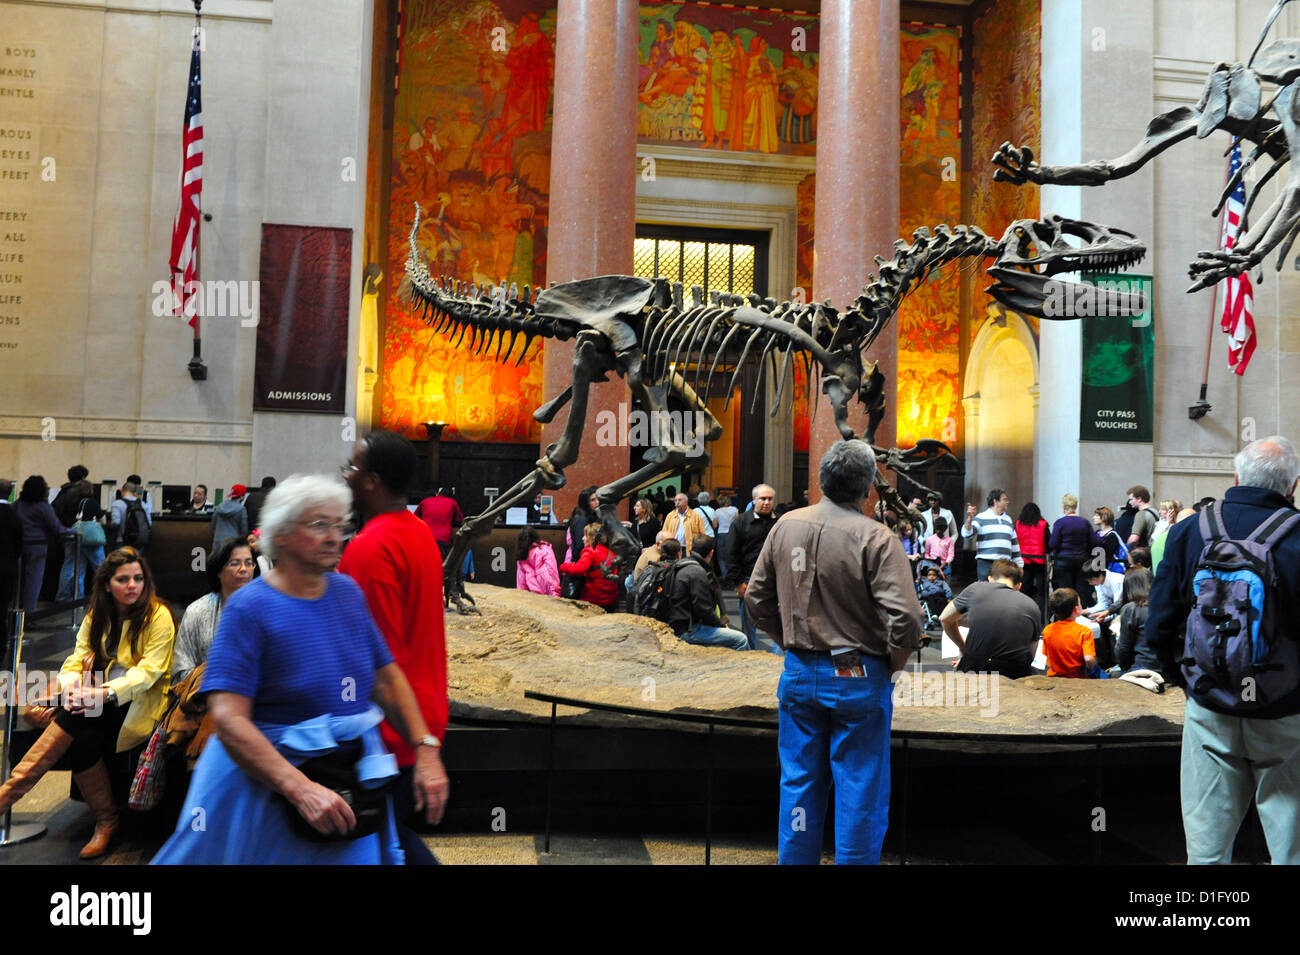 Visitors at the American Museum of Natural History in Manhattan New York USA - Stock Image